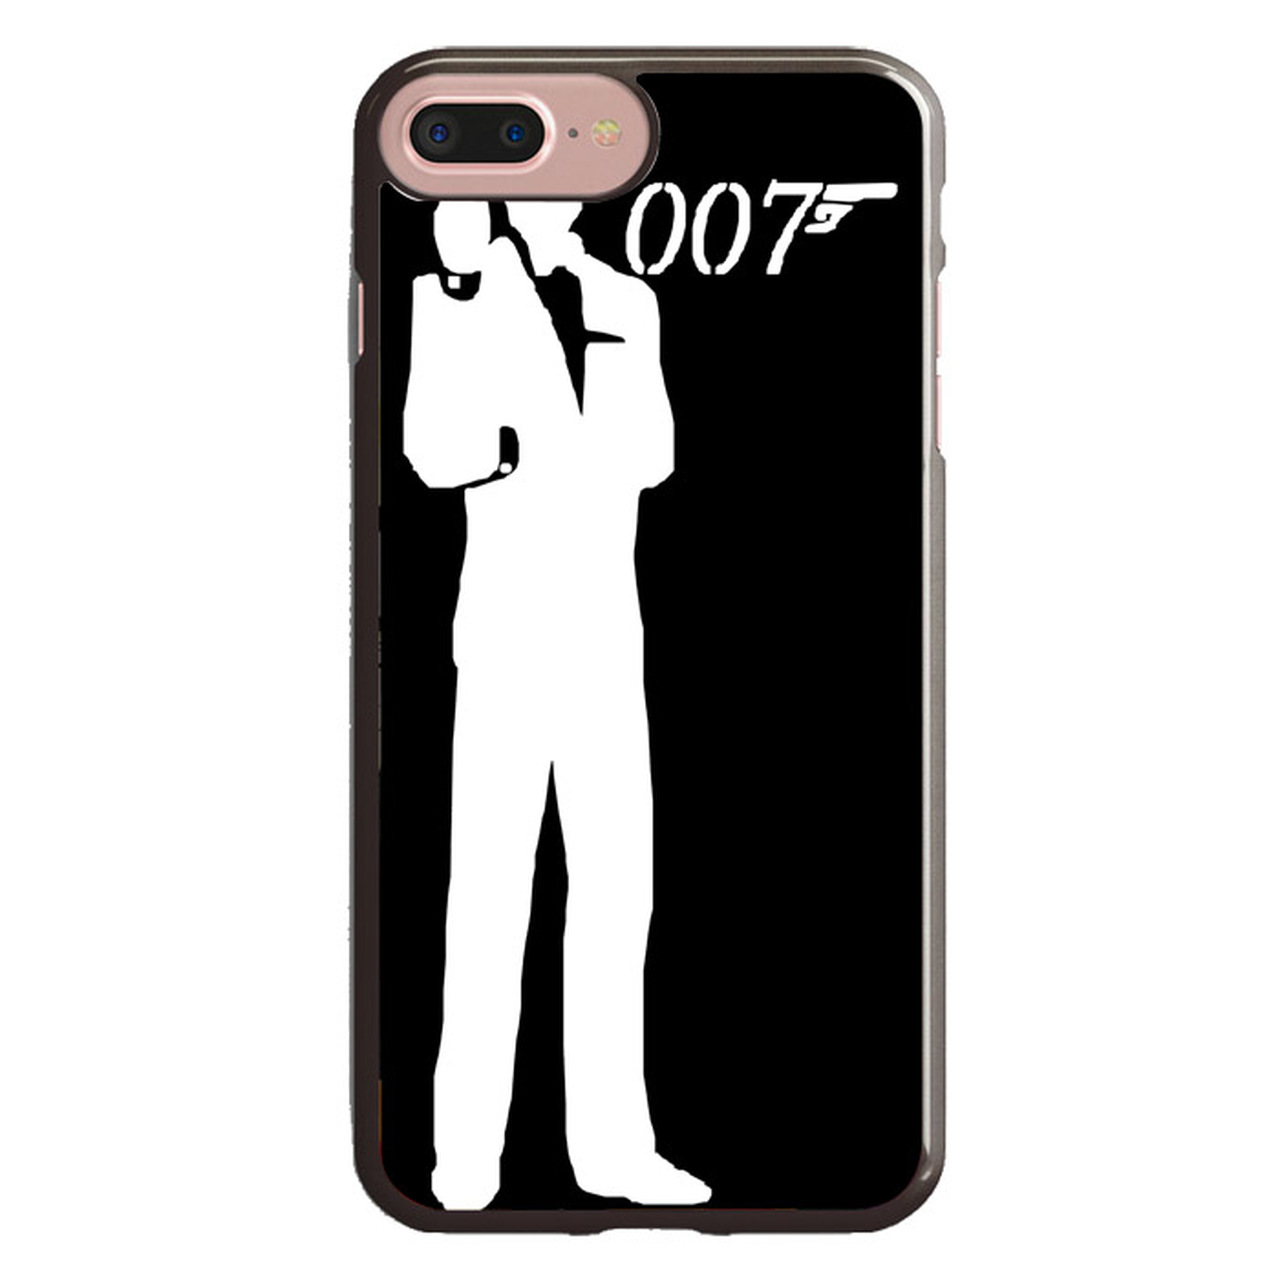 James Bond Wallpaper iPhone 8 Plus Case   leaftunescase 1280x1280